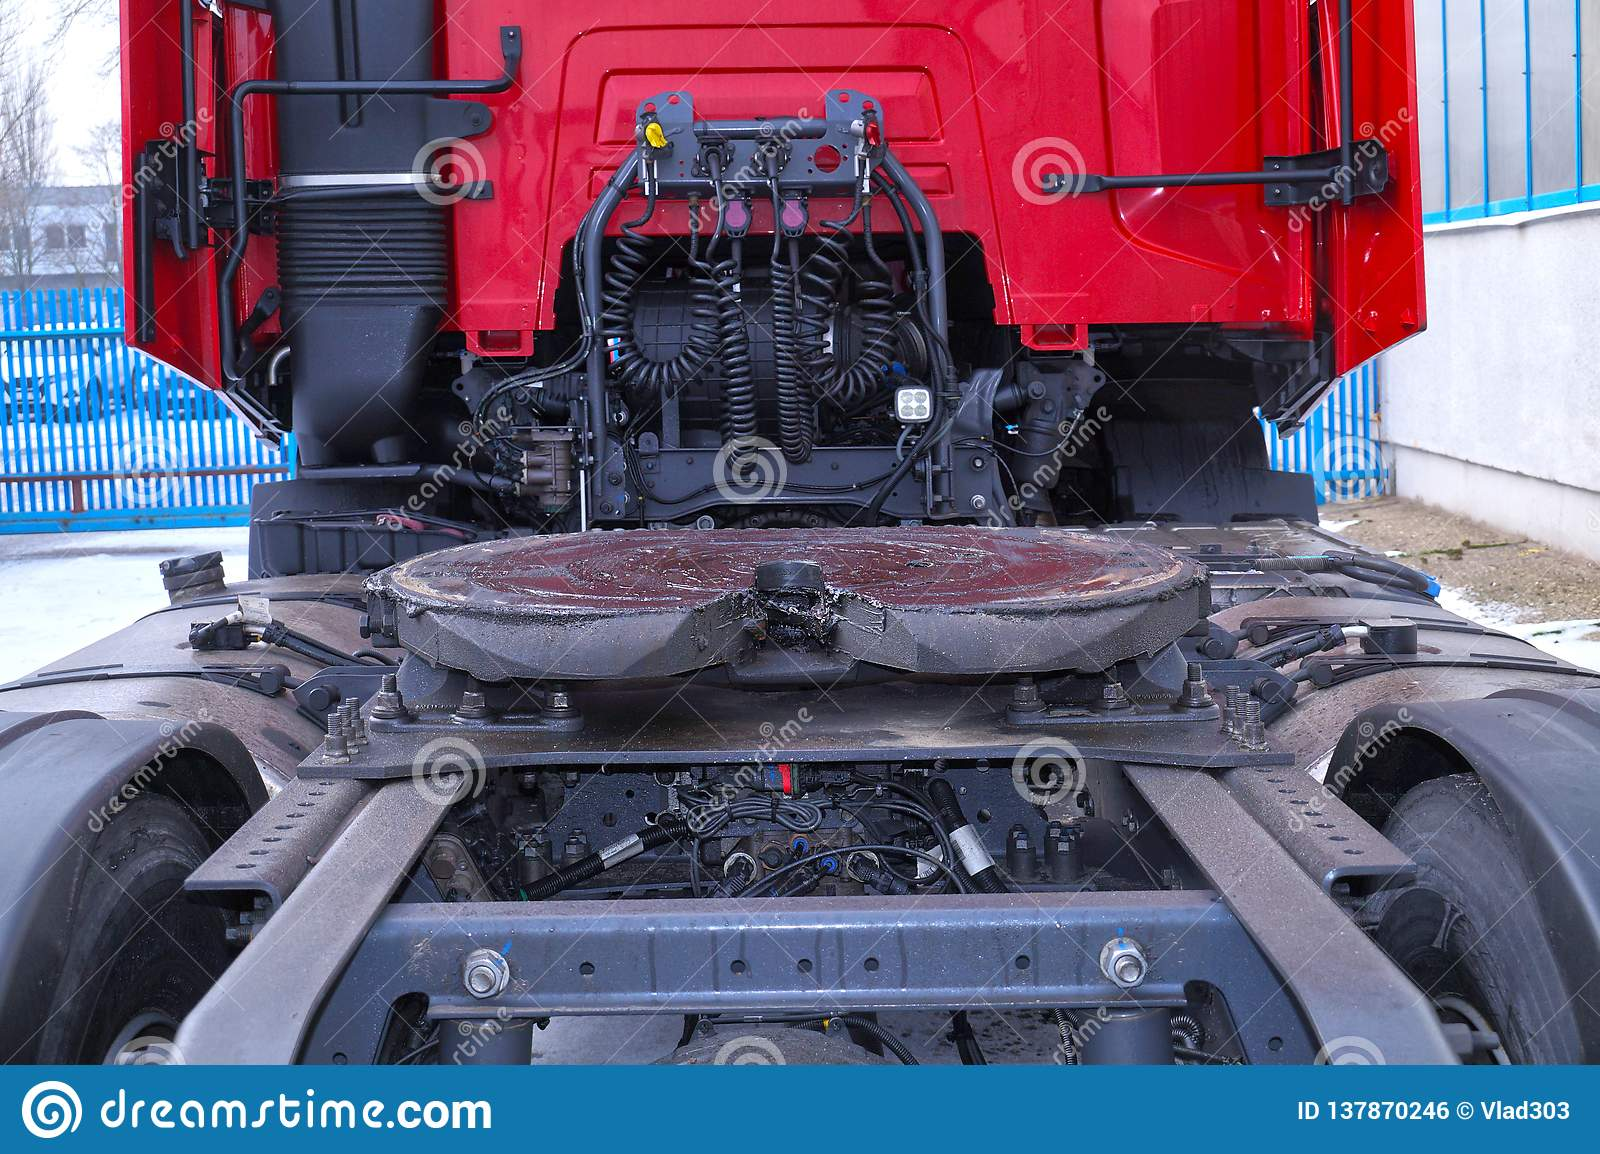 Units industry units, units and parts of tractor trailers and semi-trailers spare parts